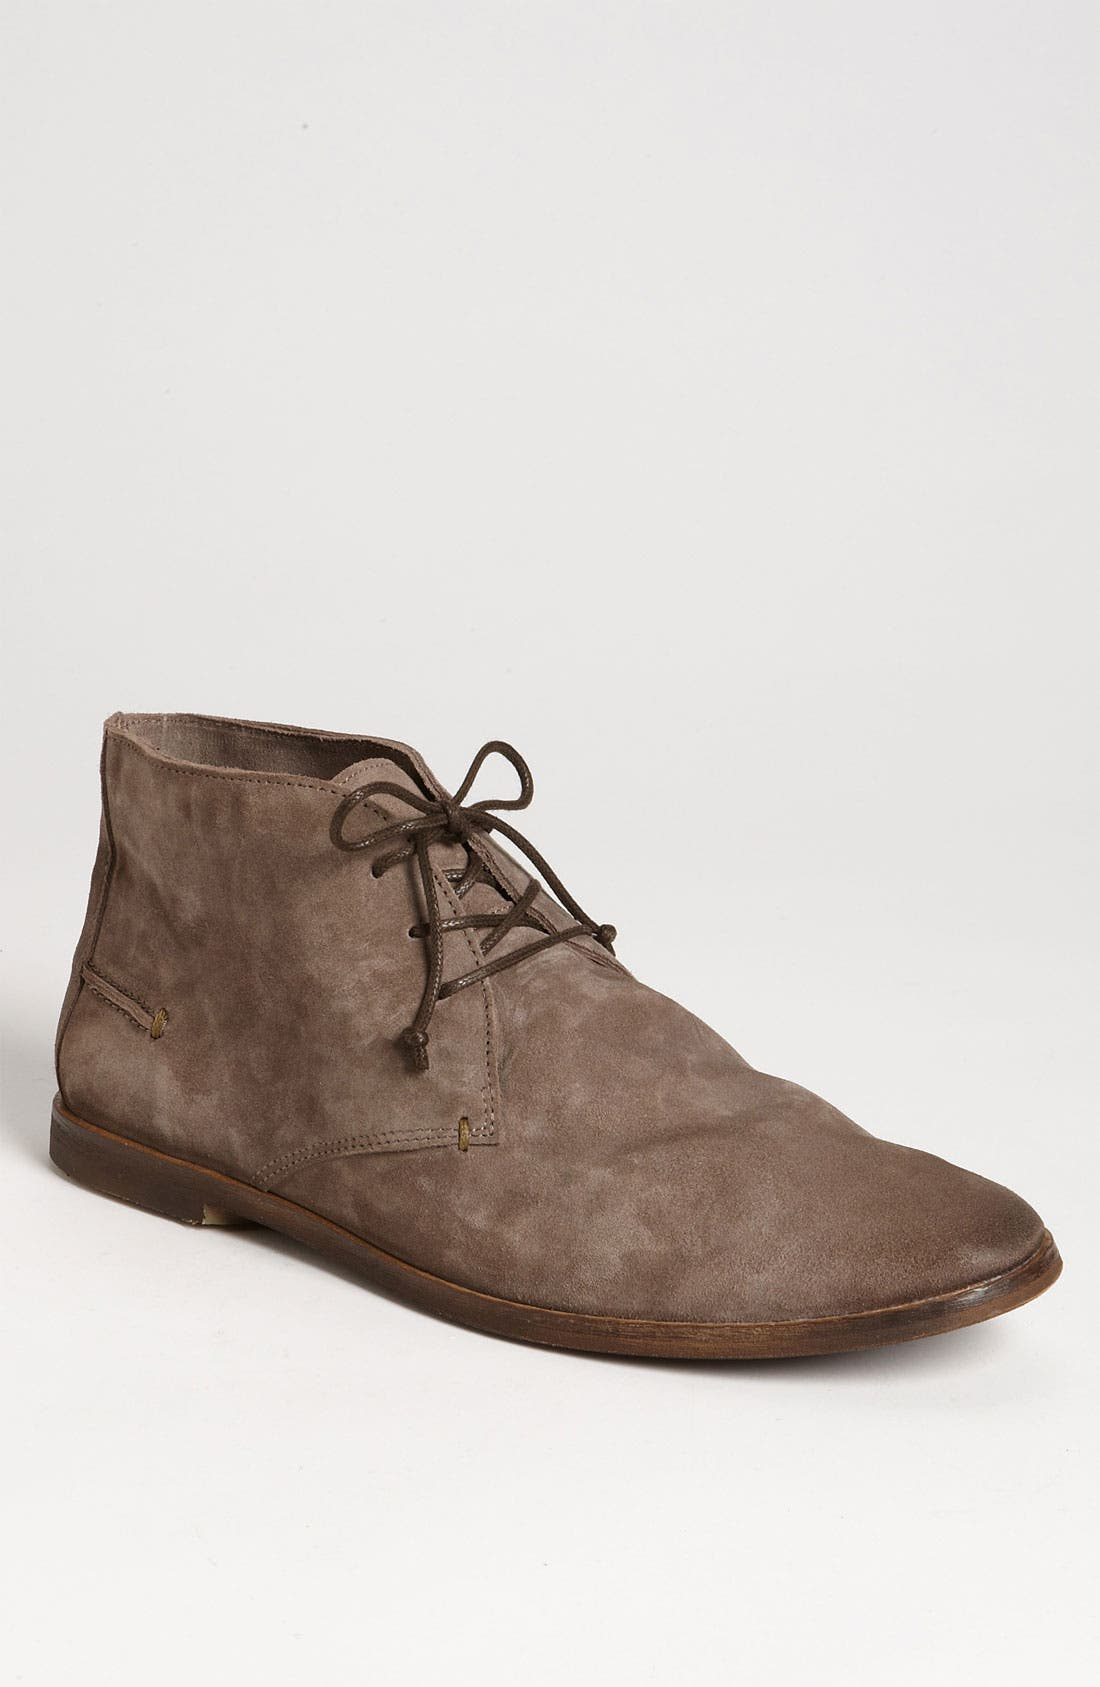 Alternate Image 1 Selected - Kickers 'River' Boot (Online Only)